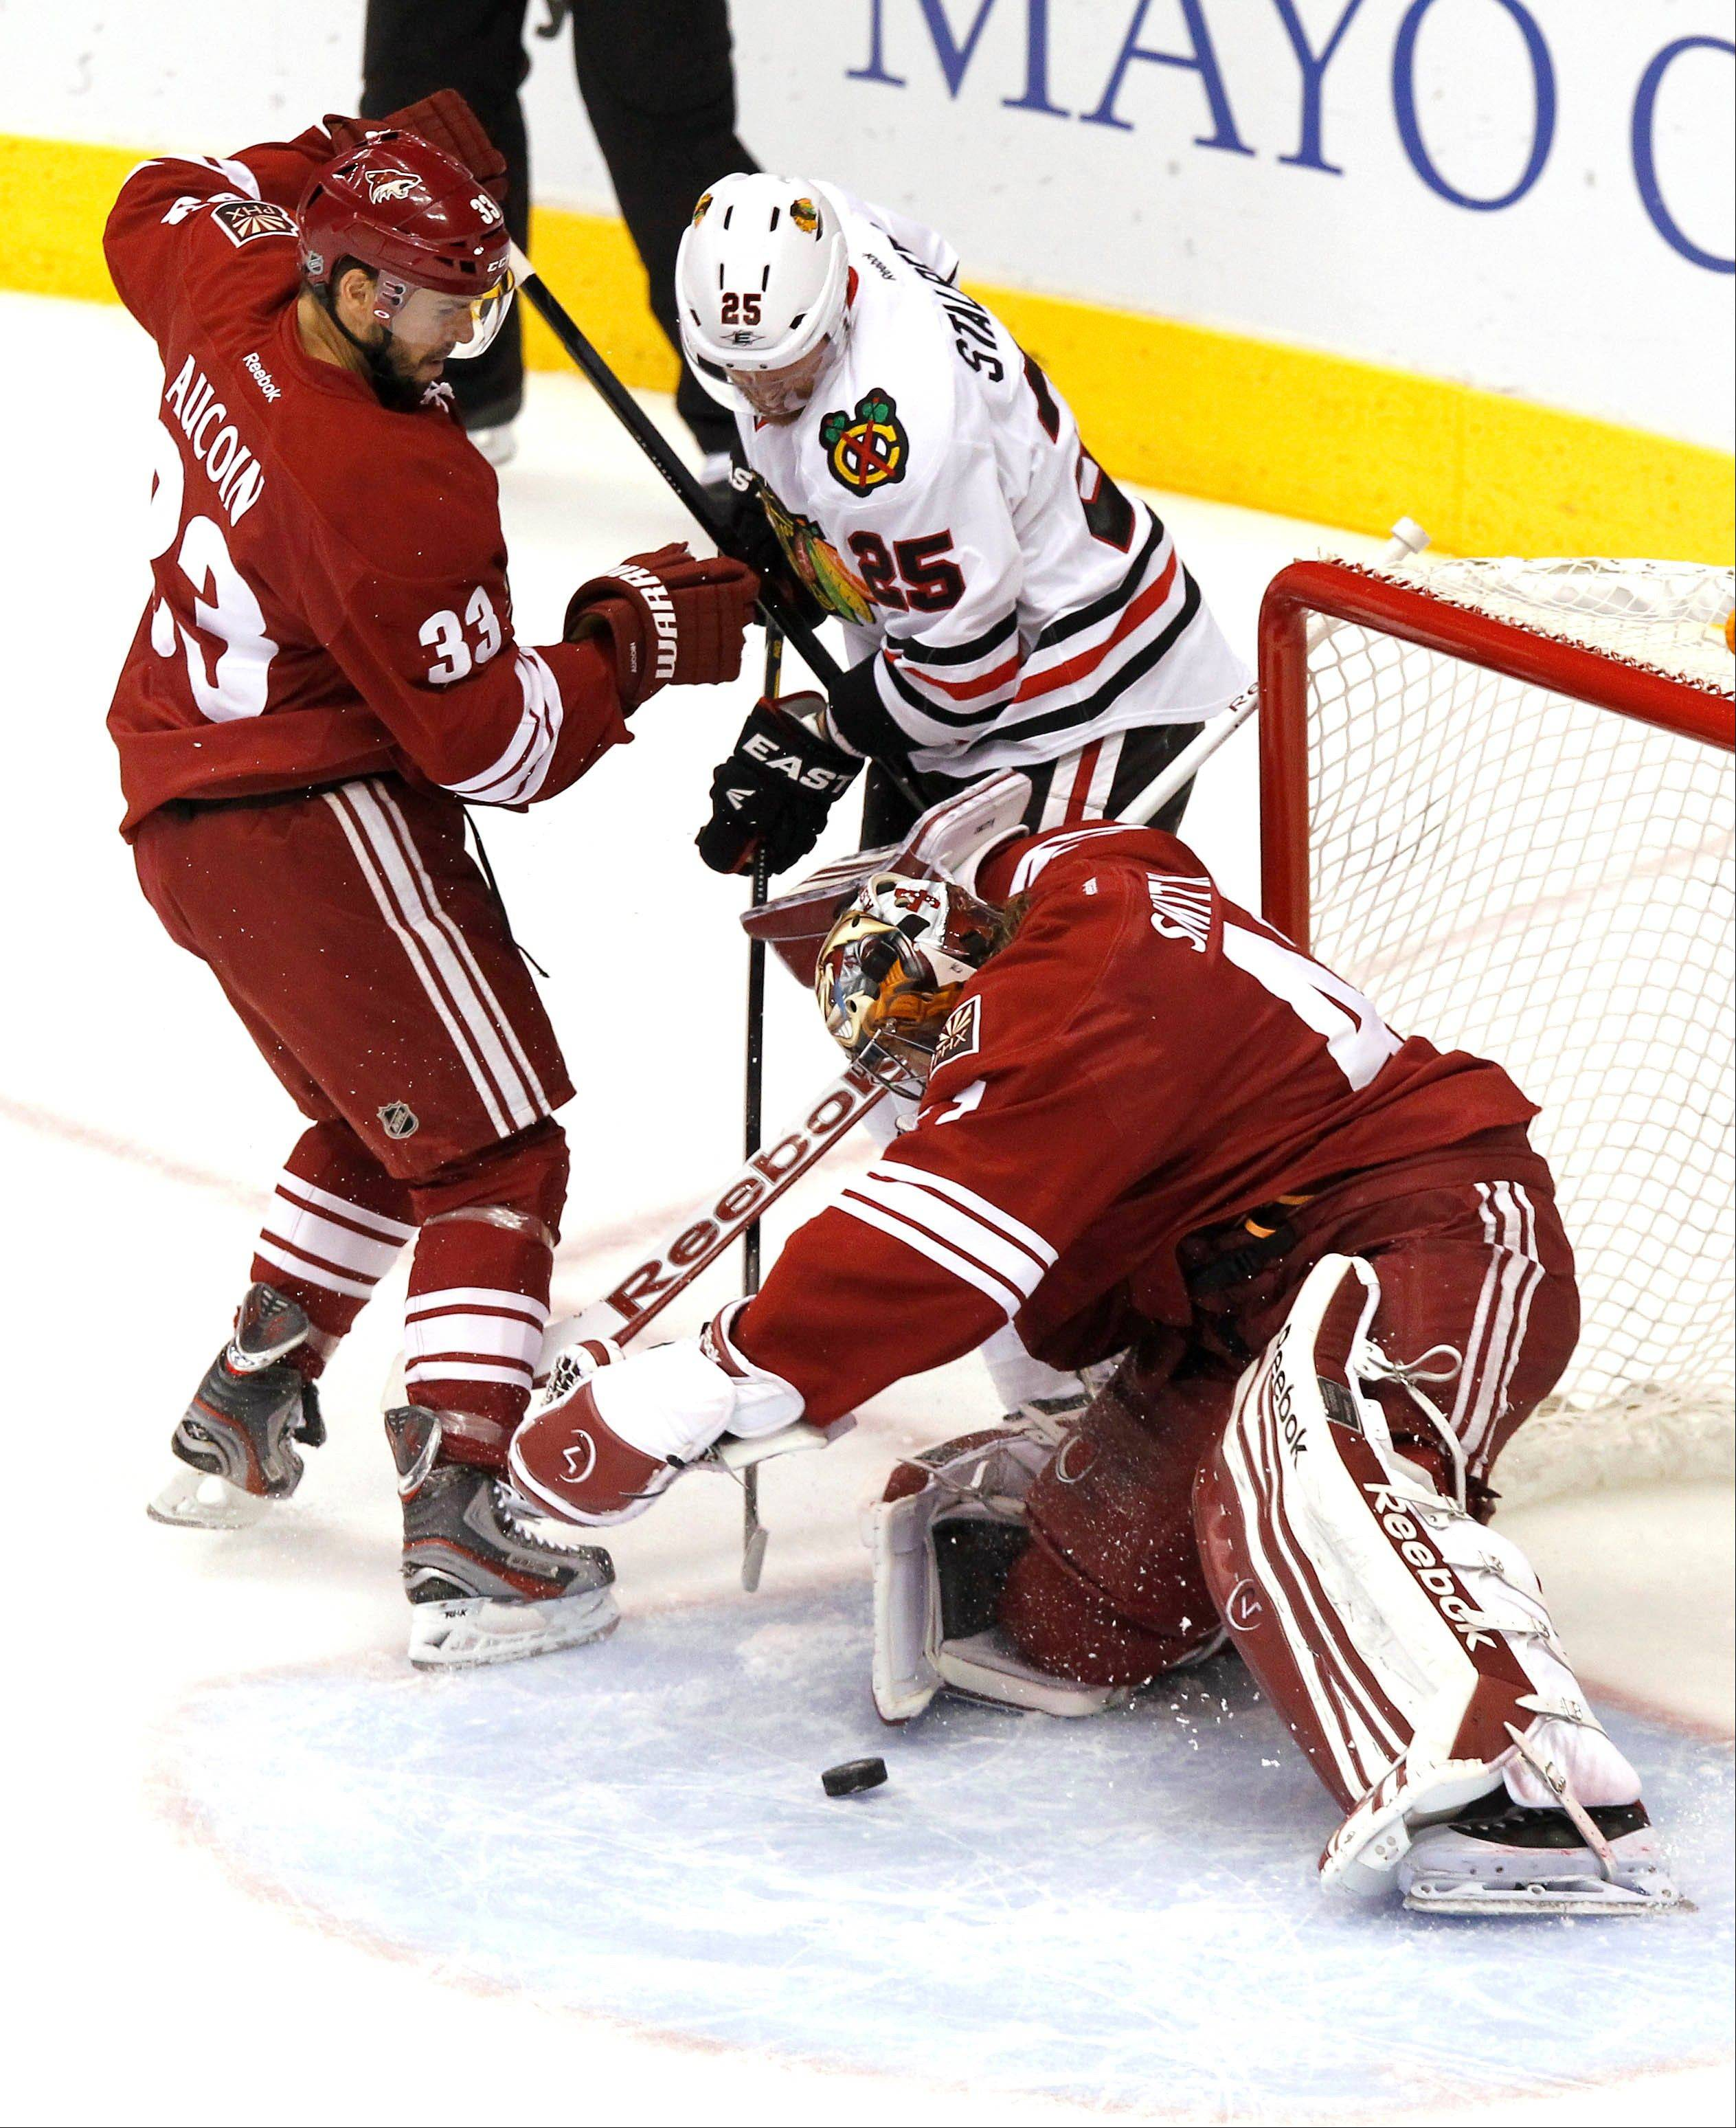 Phoenix Coyotes' Mike Smith, right, makes a save on a shot by Chicago Blackhawks' Viktor Stalberg (25), of Sweden, as Coyotes' Adrian Aucoin (33) defends during the first period in Game 5 of an NHL hockey Stanley Cup first-round playoff series Saturday, April 21, 2012, in Glendale, Ariz.